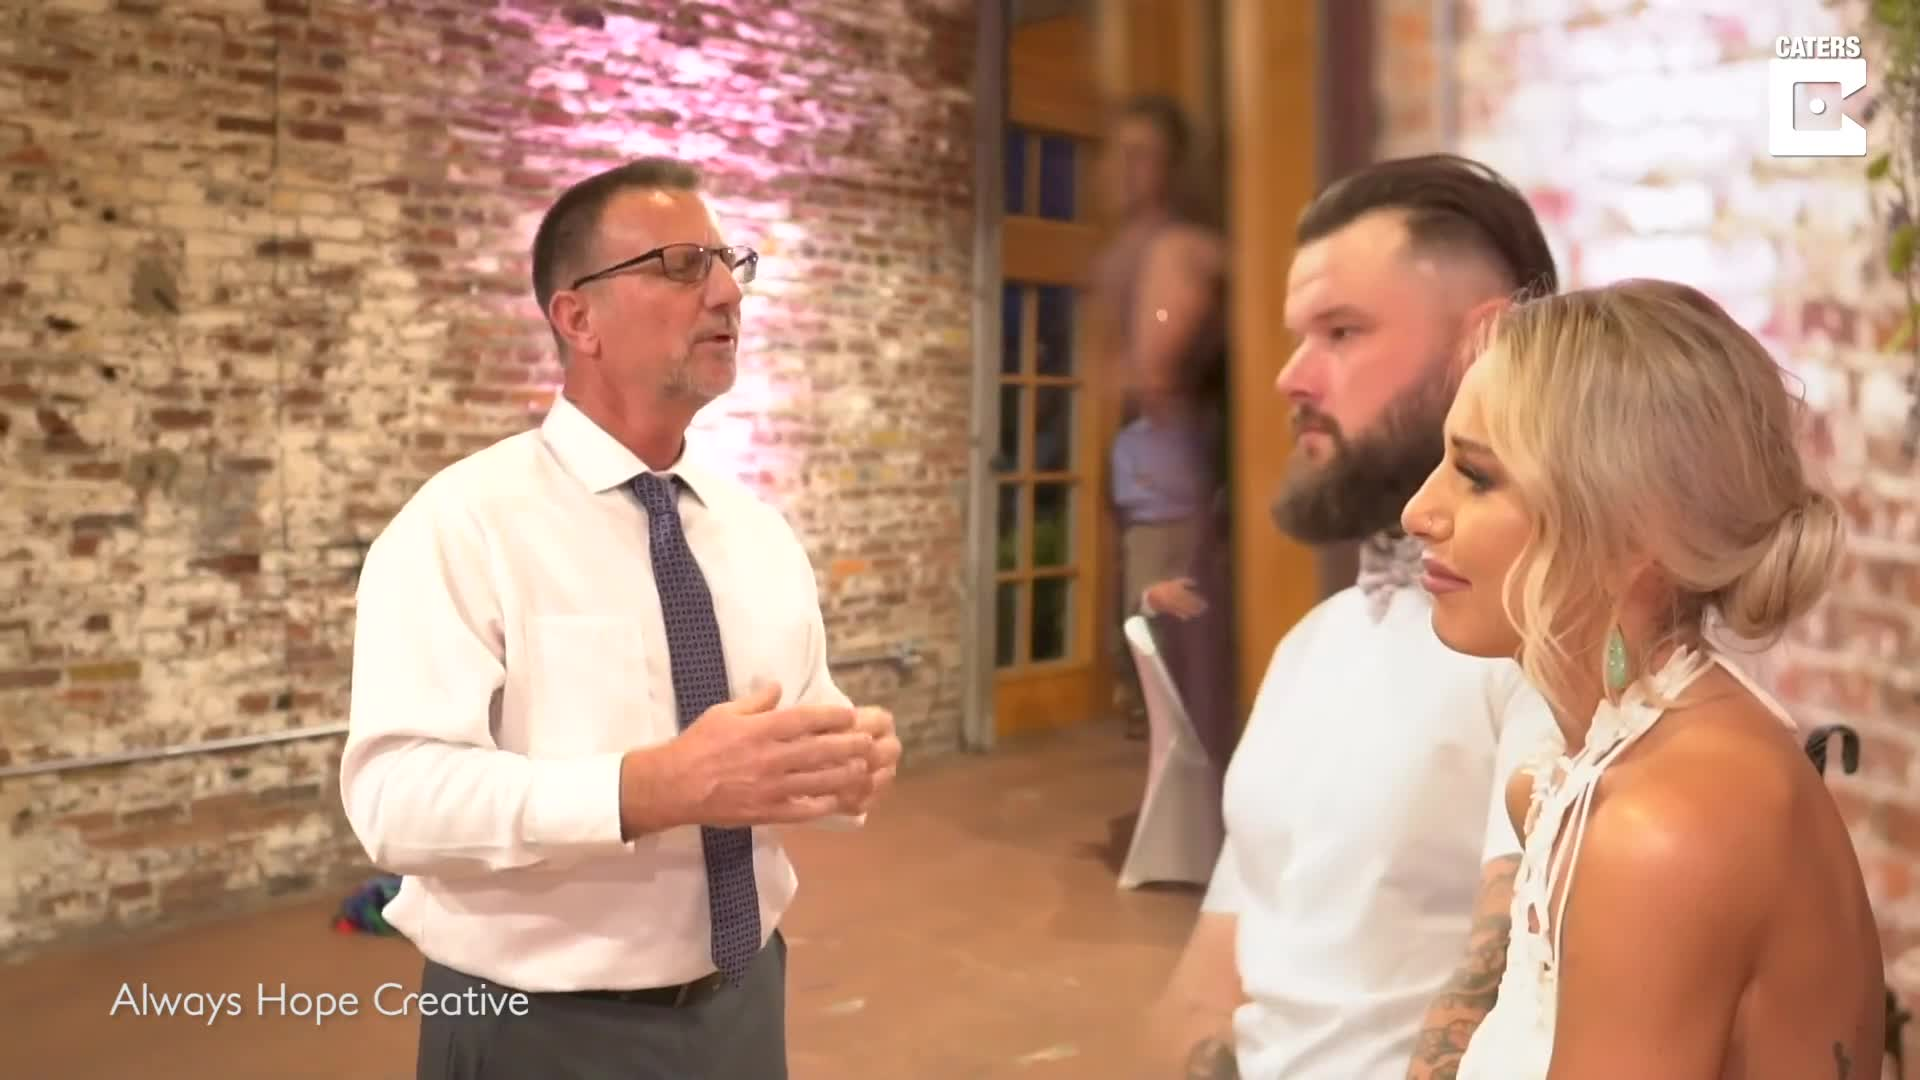 DOTING DAD USES SIGN LANGUAGE TO PERFORM EMOTIONAL SONG FOR DAUGHTER WHO USED TO COMMUNICATE THROUGH ASL AT HER WEDDING